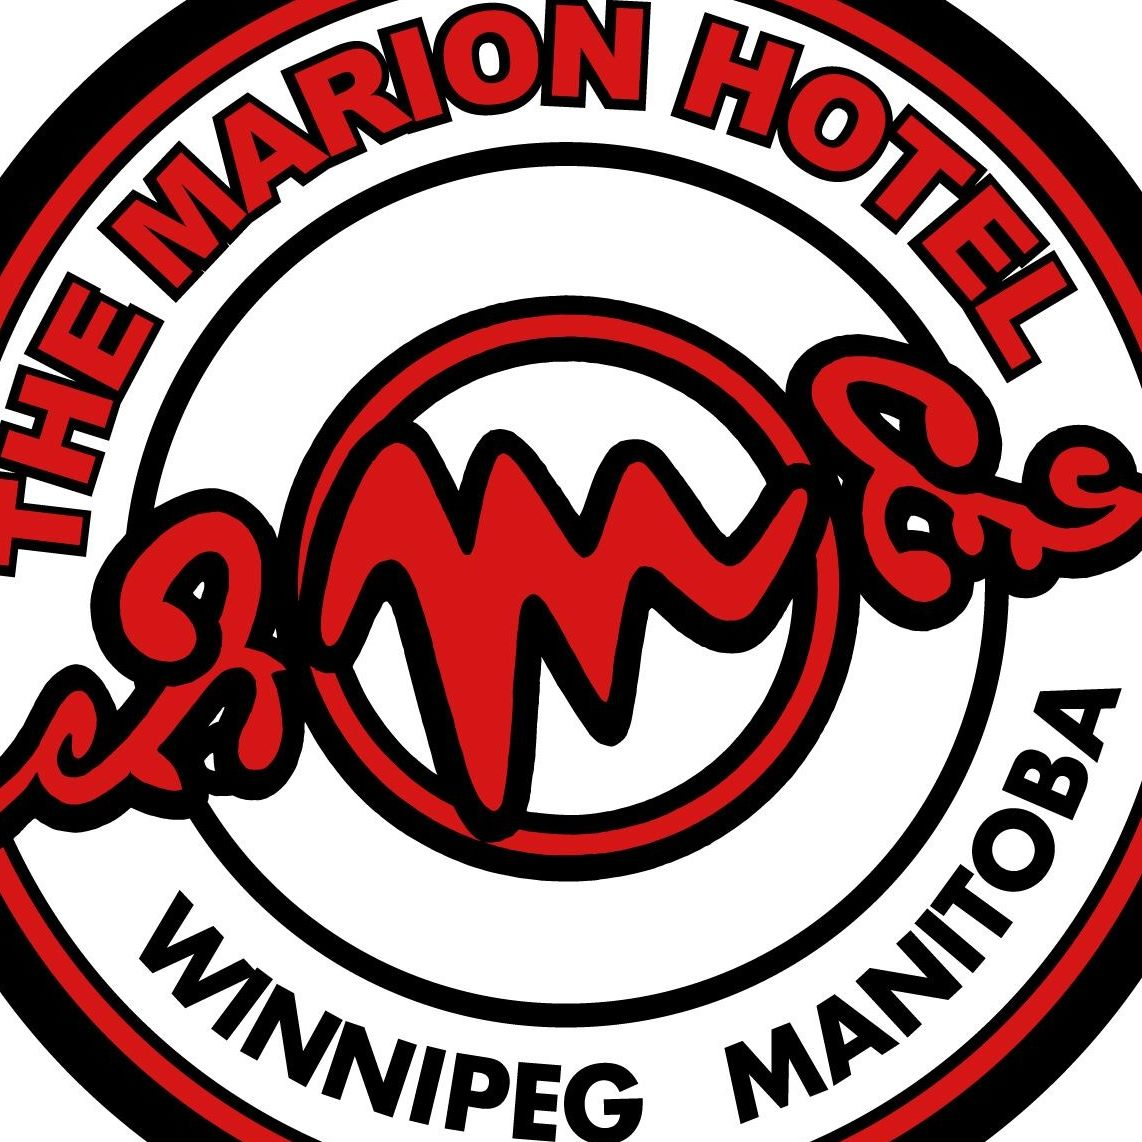 The Marion Hotel